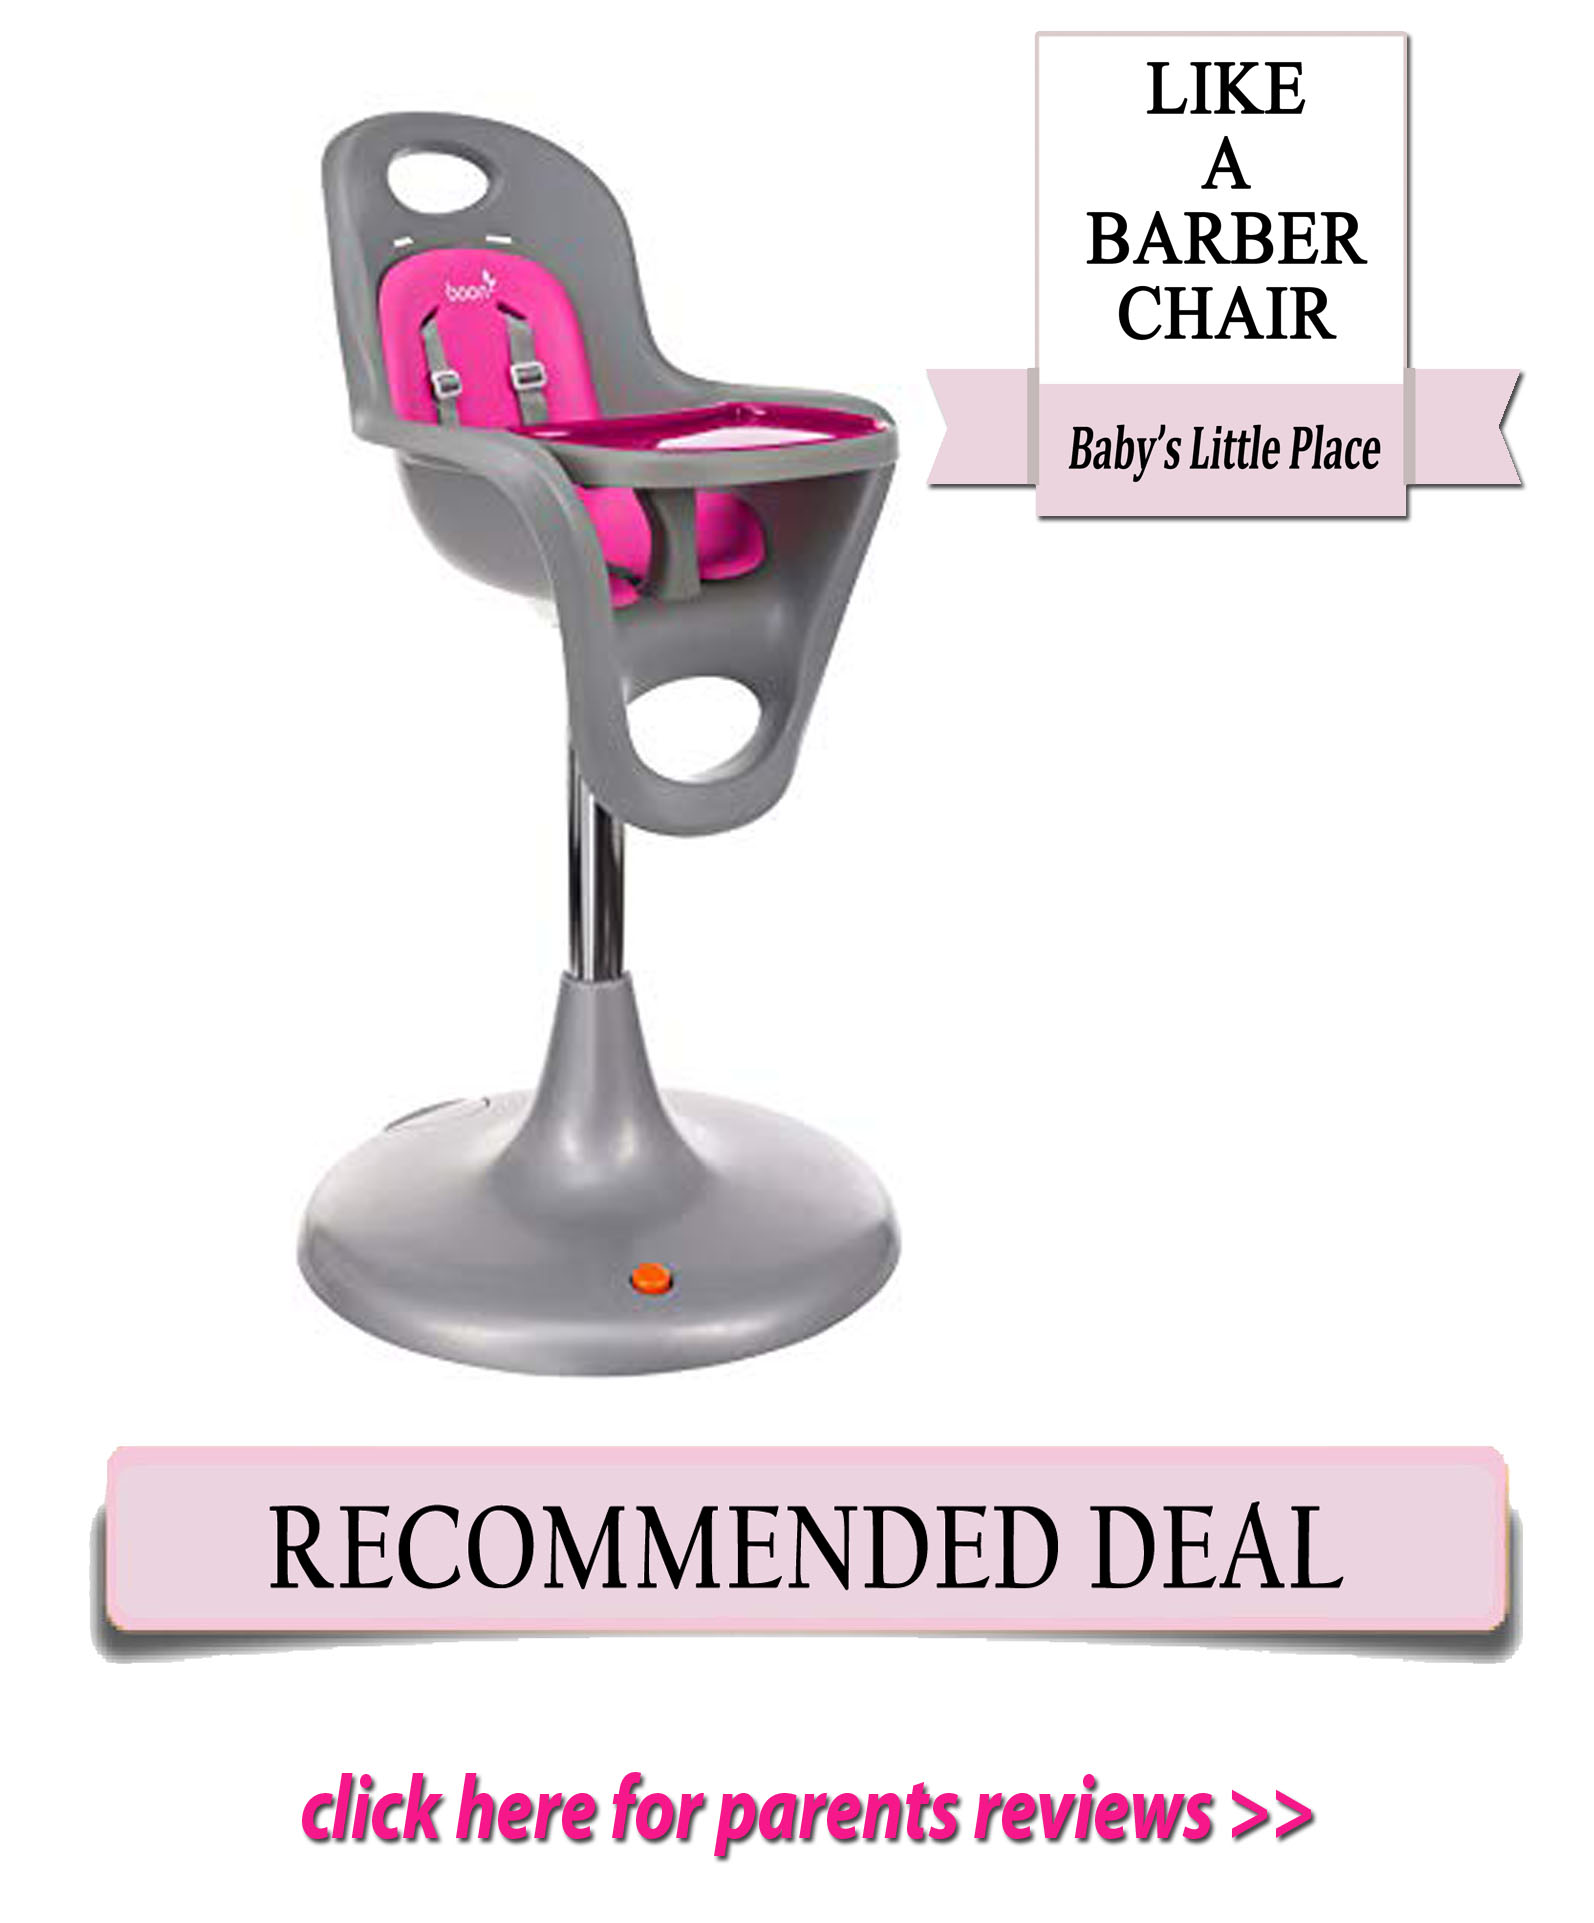 BoonFlairhighchairReview  BABYS LITTLE PLACE